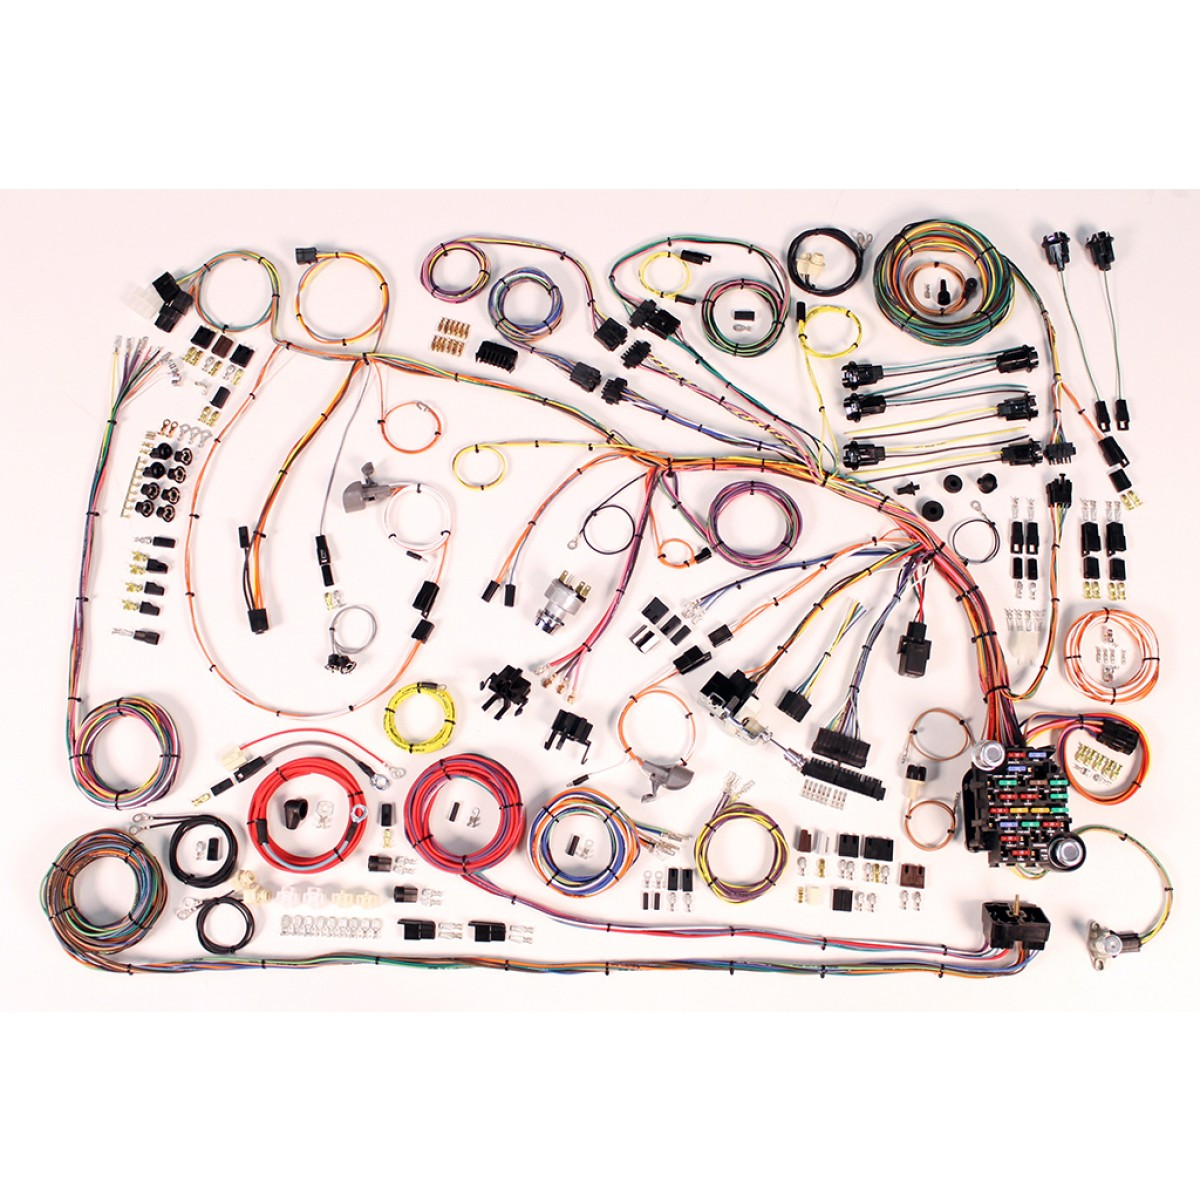 wiring harness kit 1966 1968 impala part 510372 66 68 impala full wire harness 510372 american auto wire code 510 wiring harness factory fitting aaw wiring harness at aneh.co